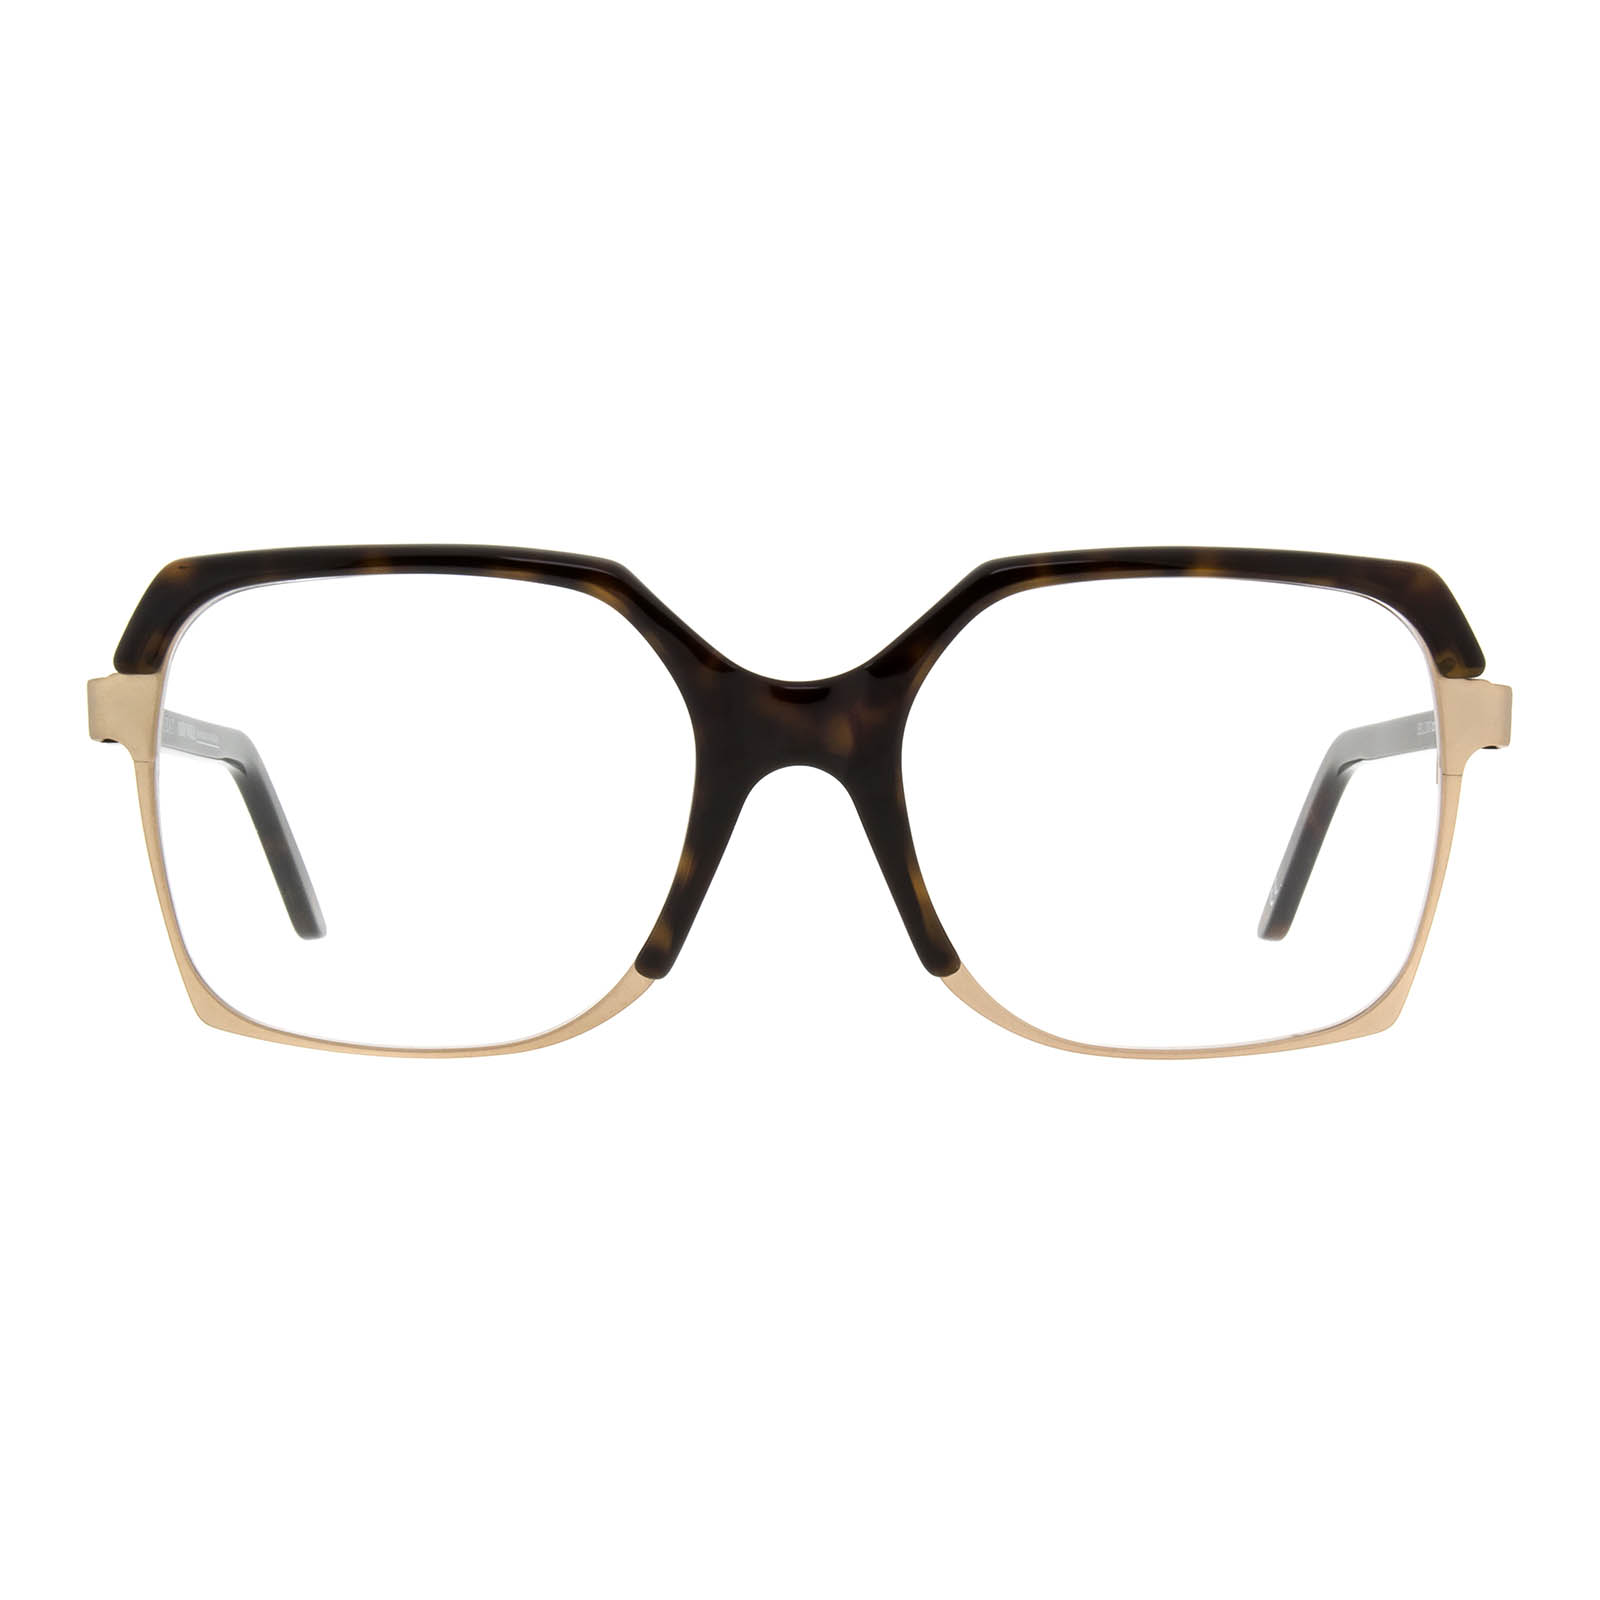 ANDY WOLF EYEWEAR_BELLING_B_front